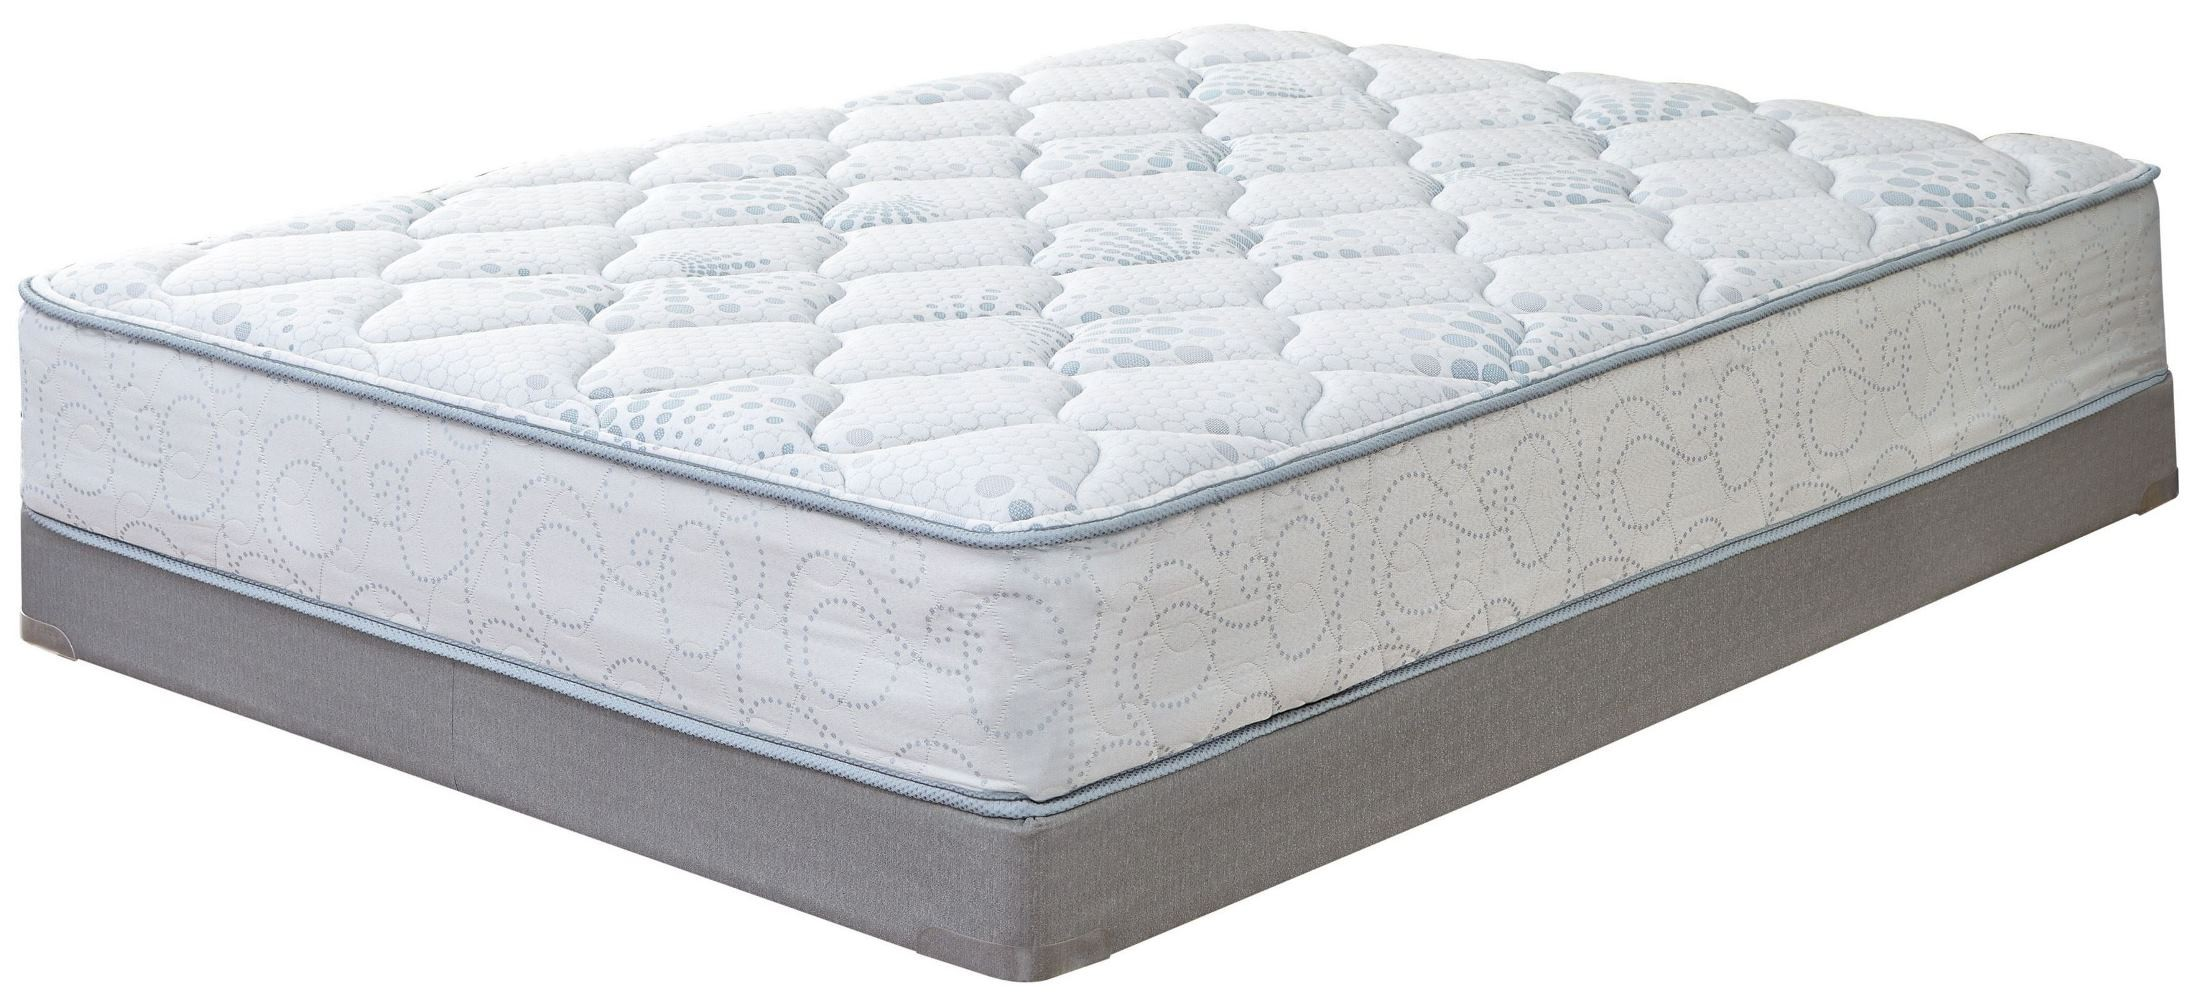 Mattress Foundation Kids Bedding Innerspring Full Size Mattress With